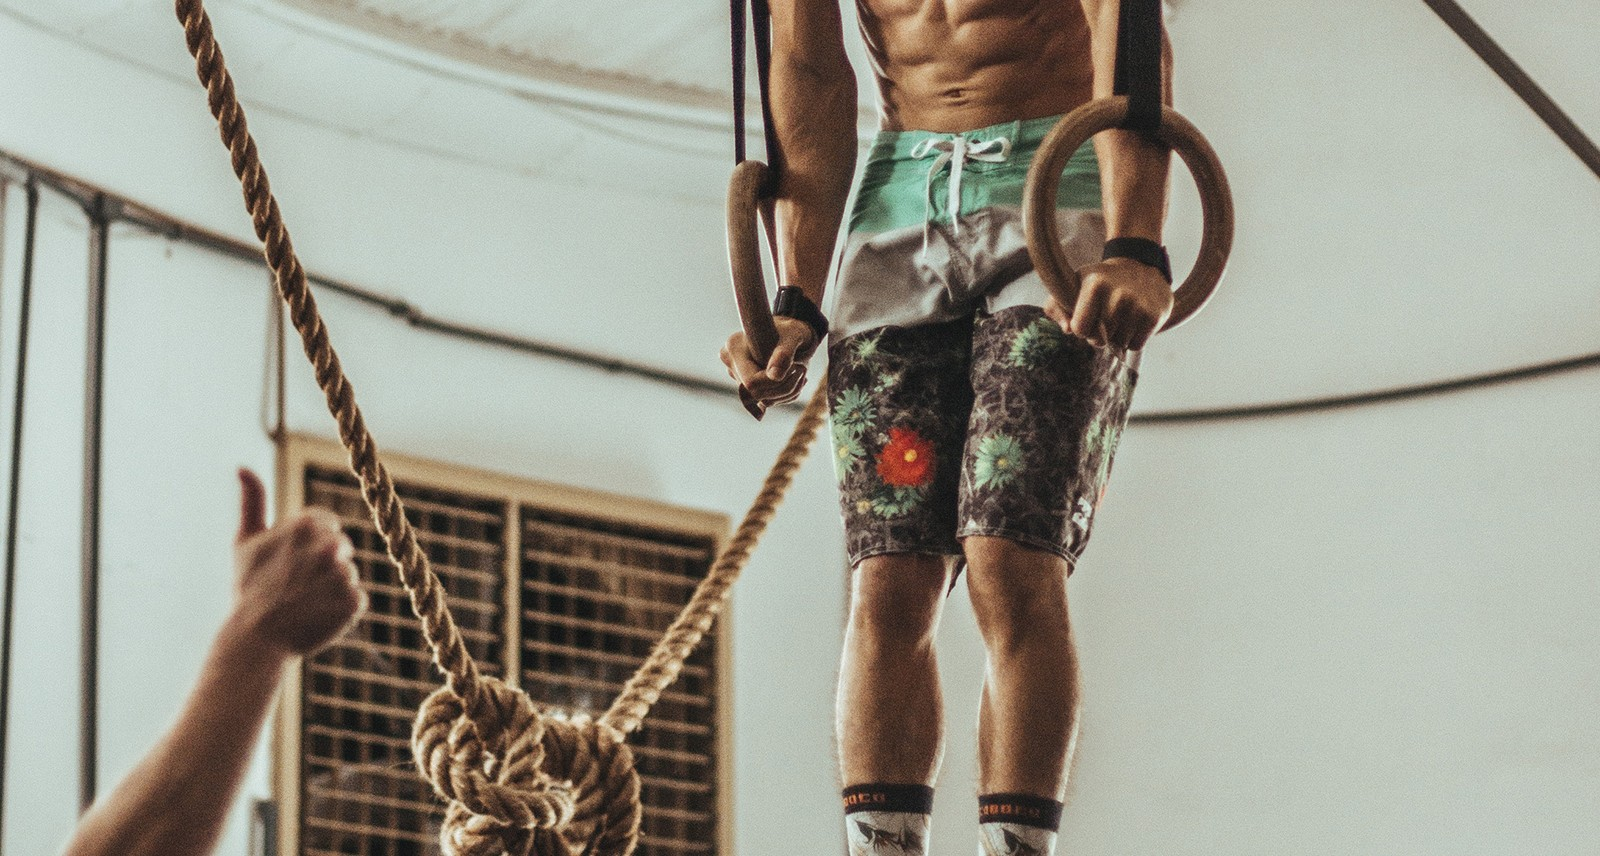 Why Is a Muscle-Up the Fitness Goal I Didn't Know I Should Be Aspiring to?